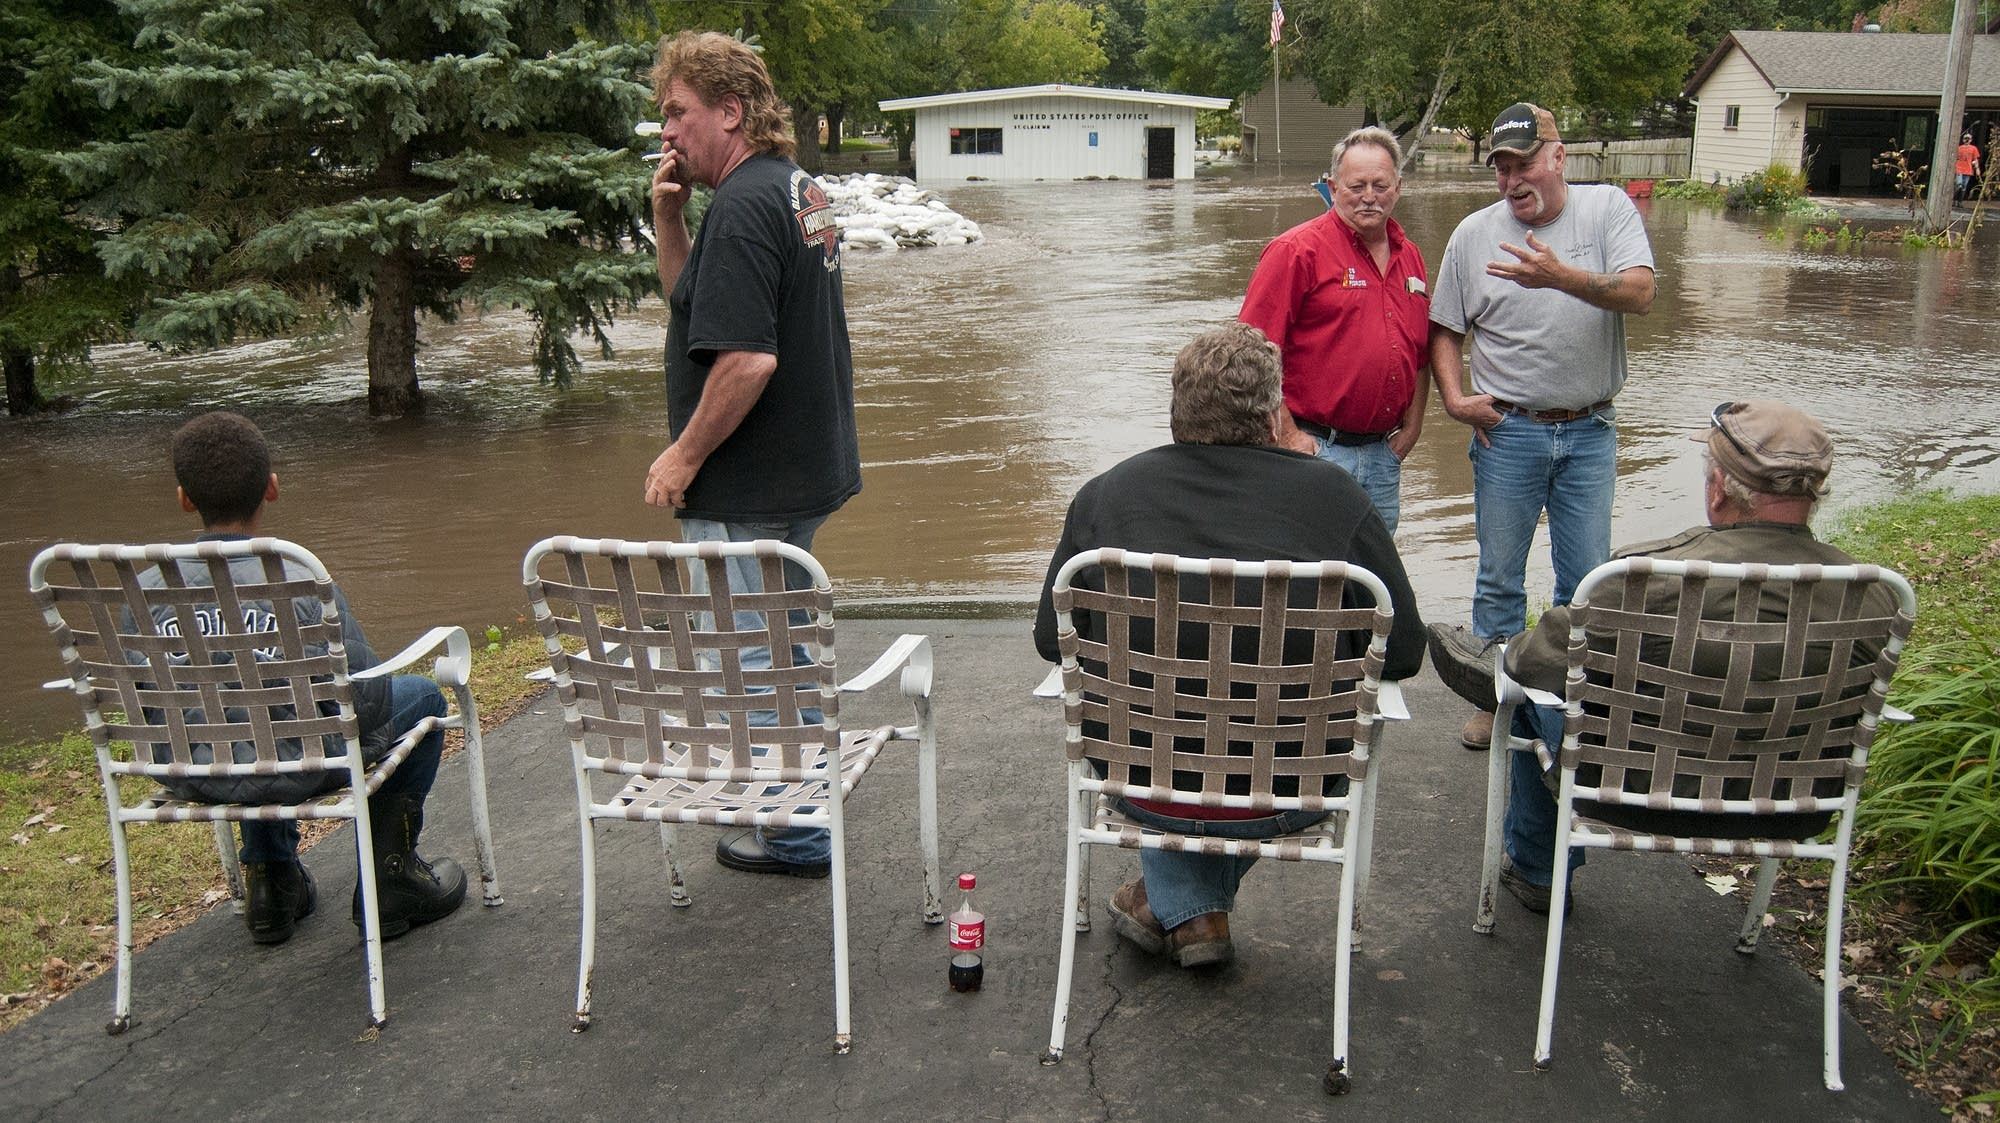 Southeastern Minnesota still swamped after a deluge of rain